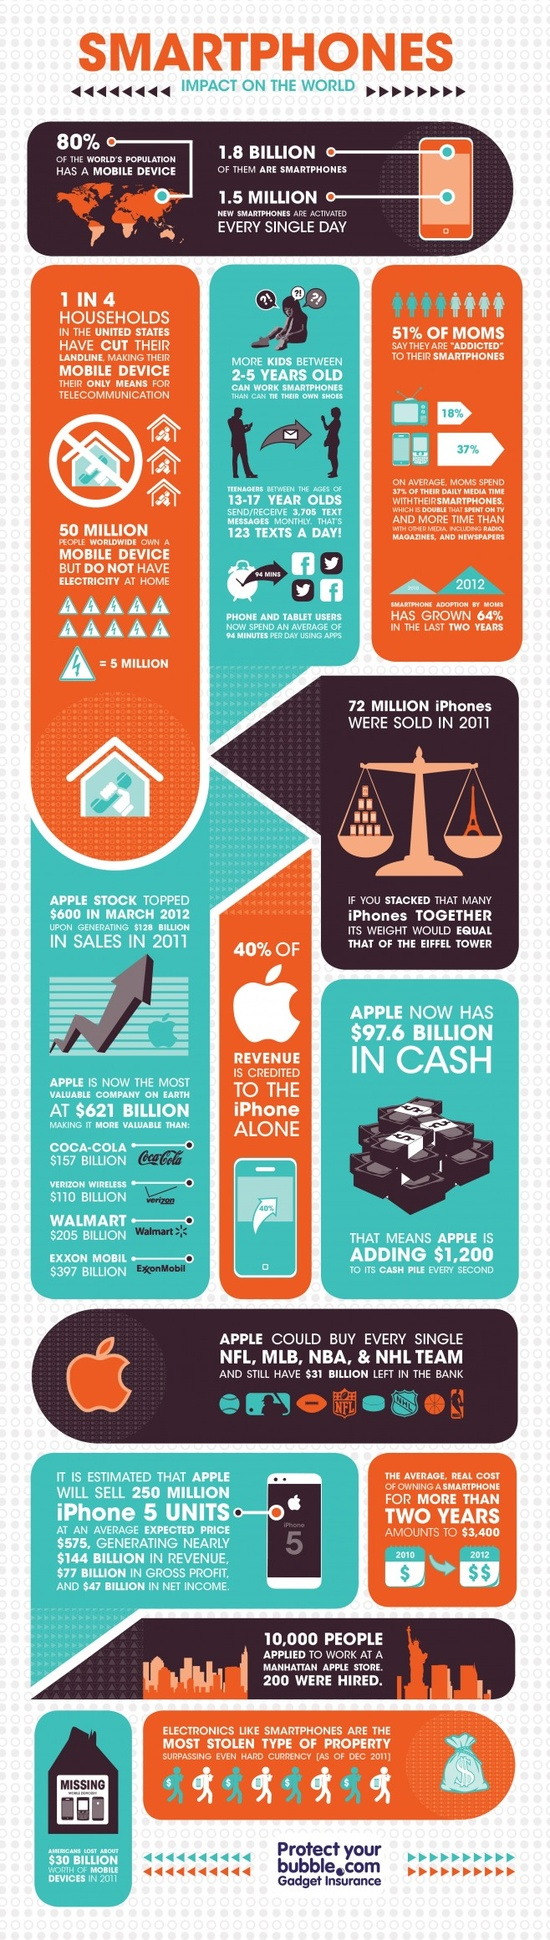 #Smartphones Impact on the World